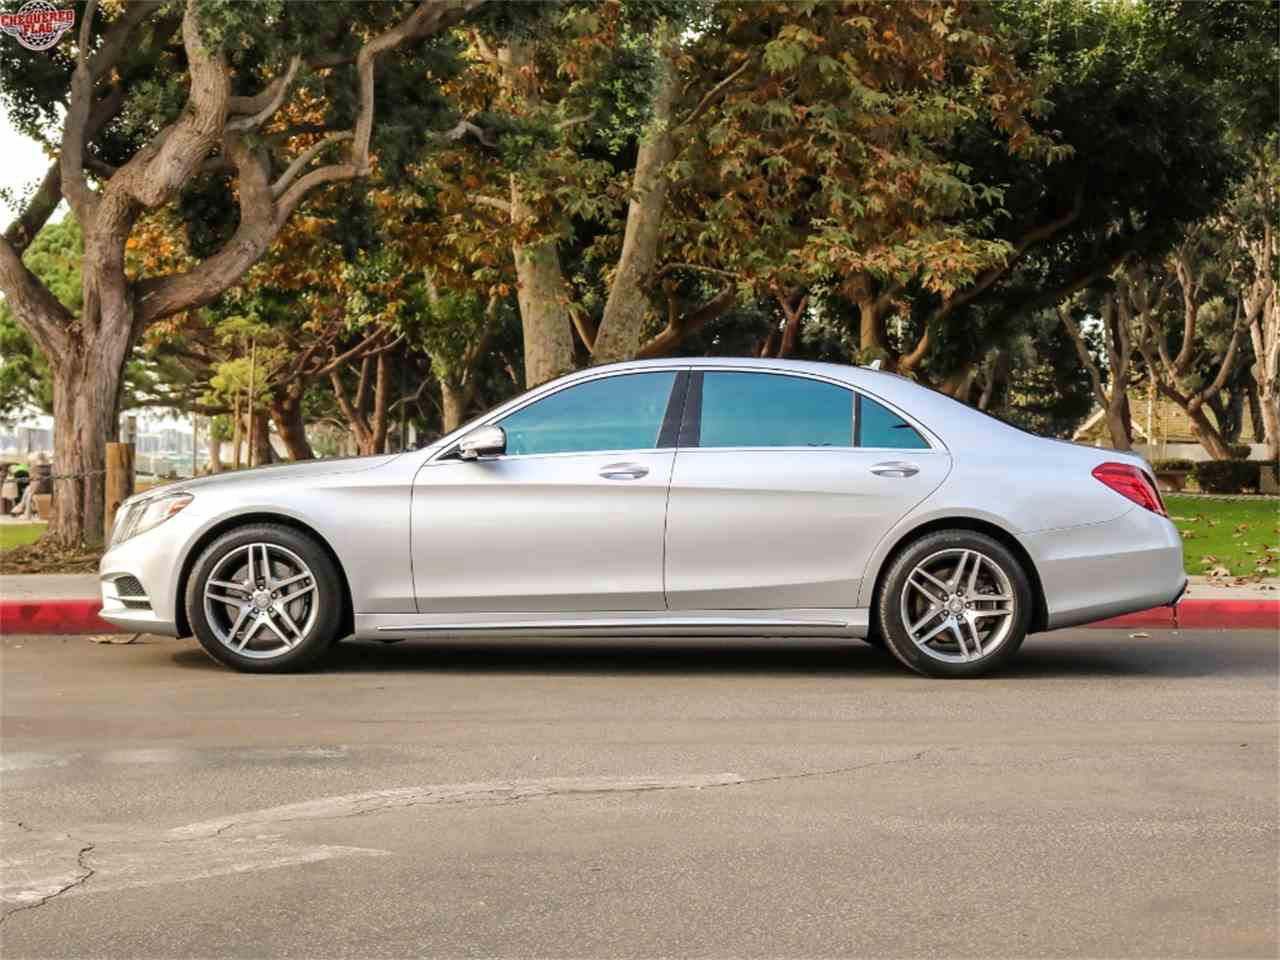 Large Picture of '14 Mercedes-Benz S-Class - $57,500.00 - MBGZ